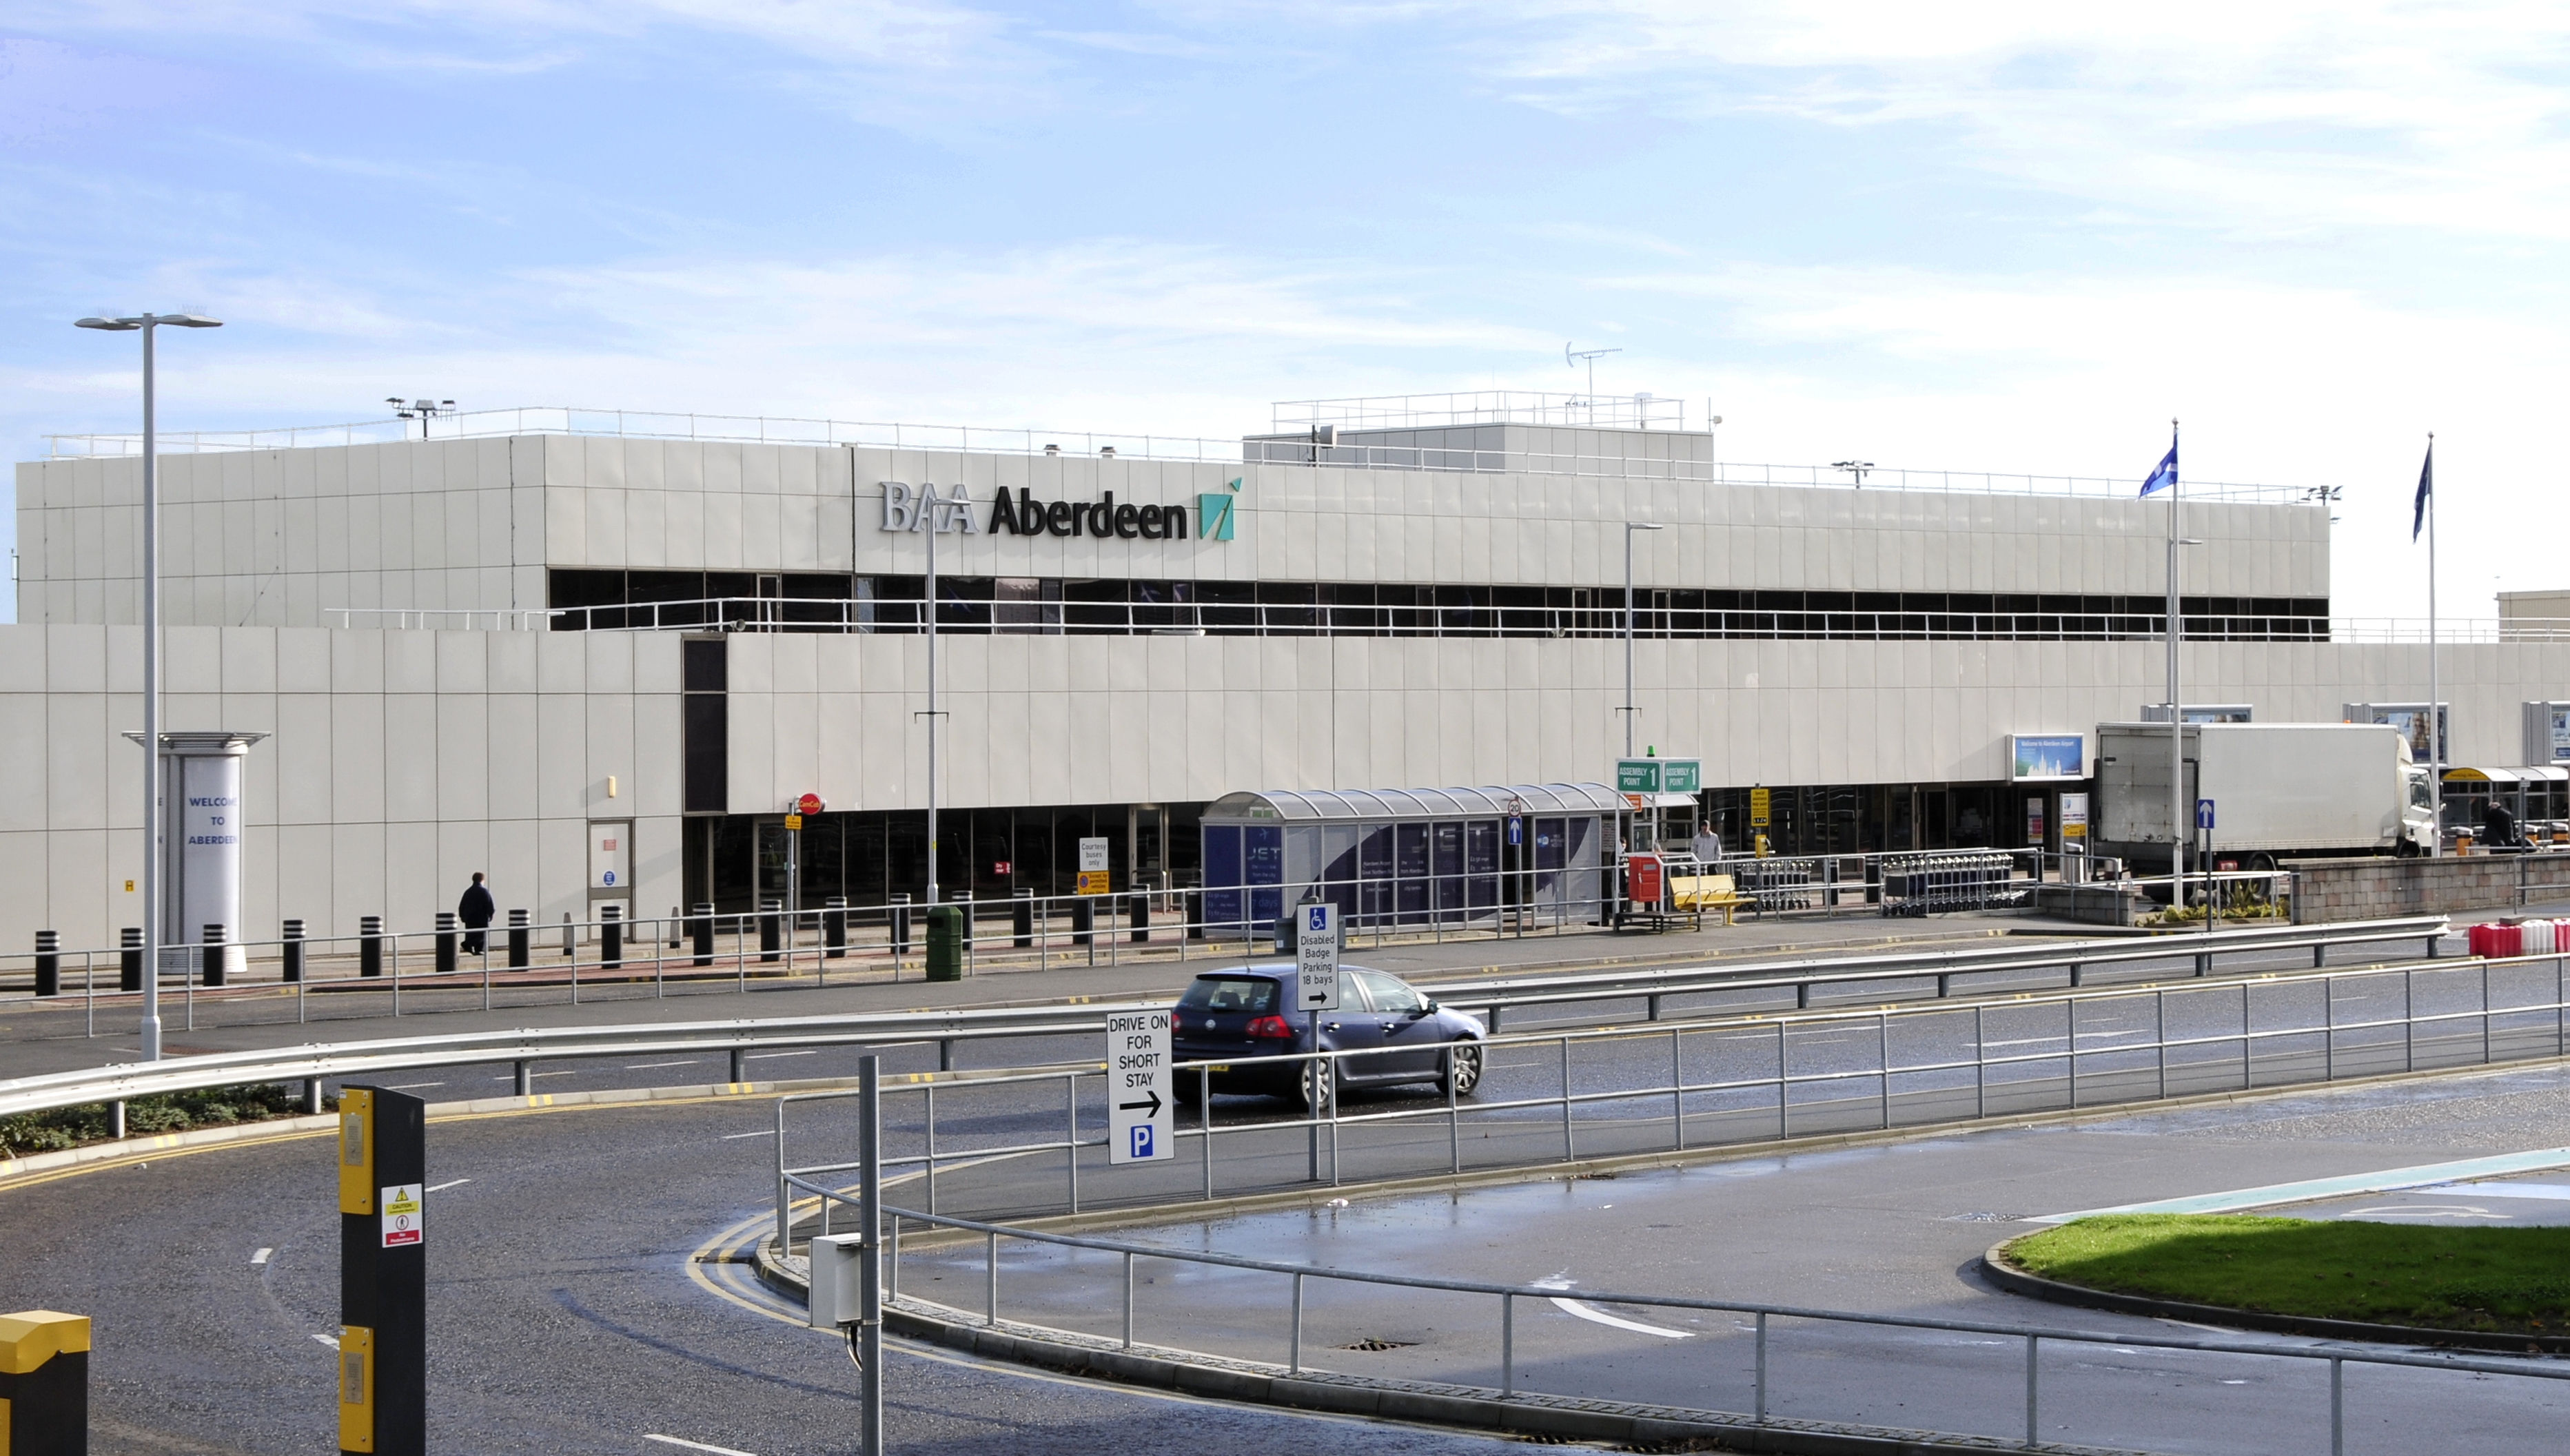 aberdeen airport Pick up your rental car directly from aberdeen airport compare the best deals at abz airport from quality car rental providers, large and small lowest price guarantee.